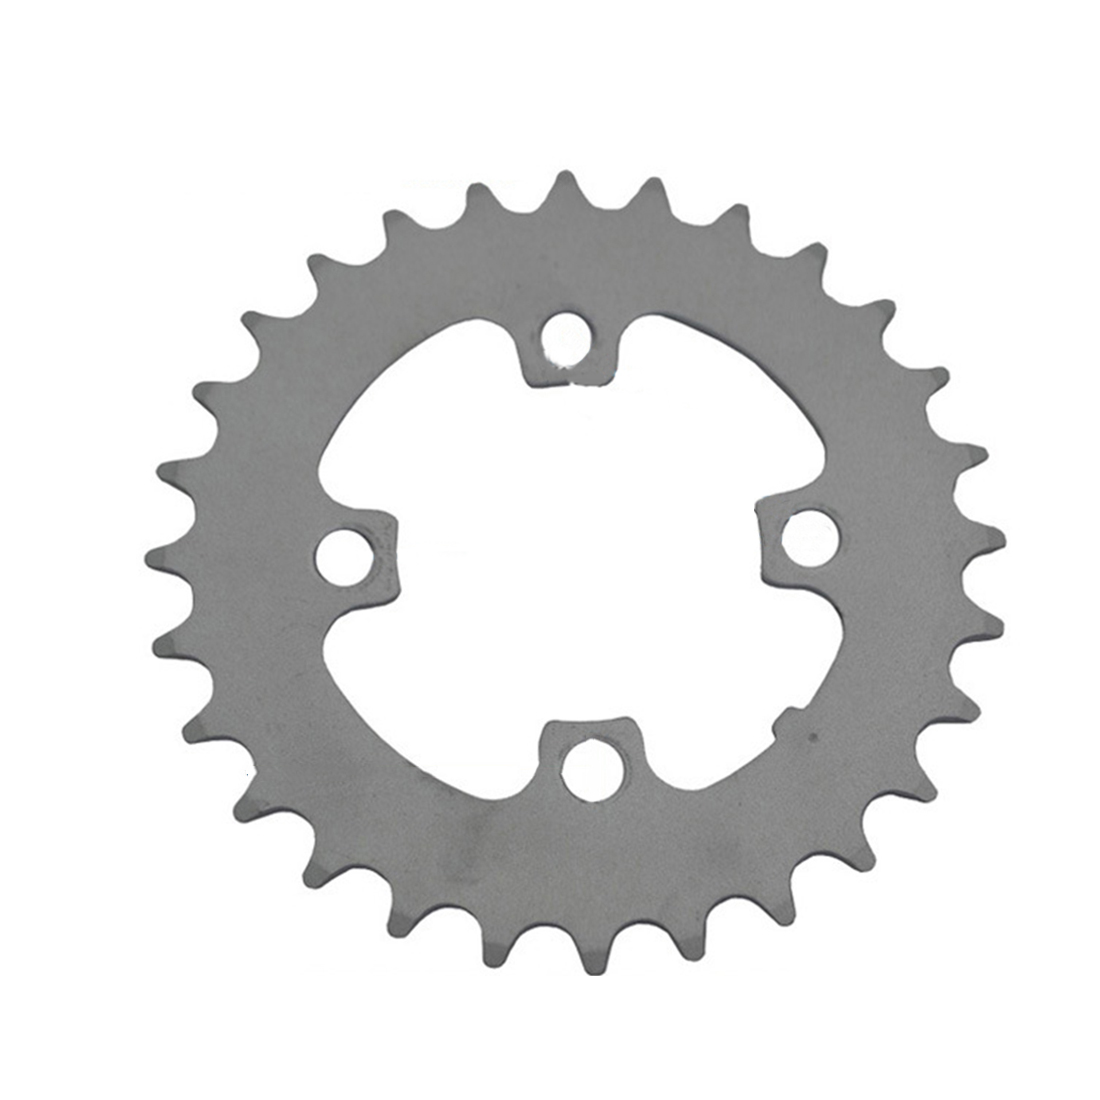 Round Disc Chainring Sprocket Wheel Cycling Component Parts MTB Bike bicycle